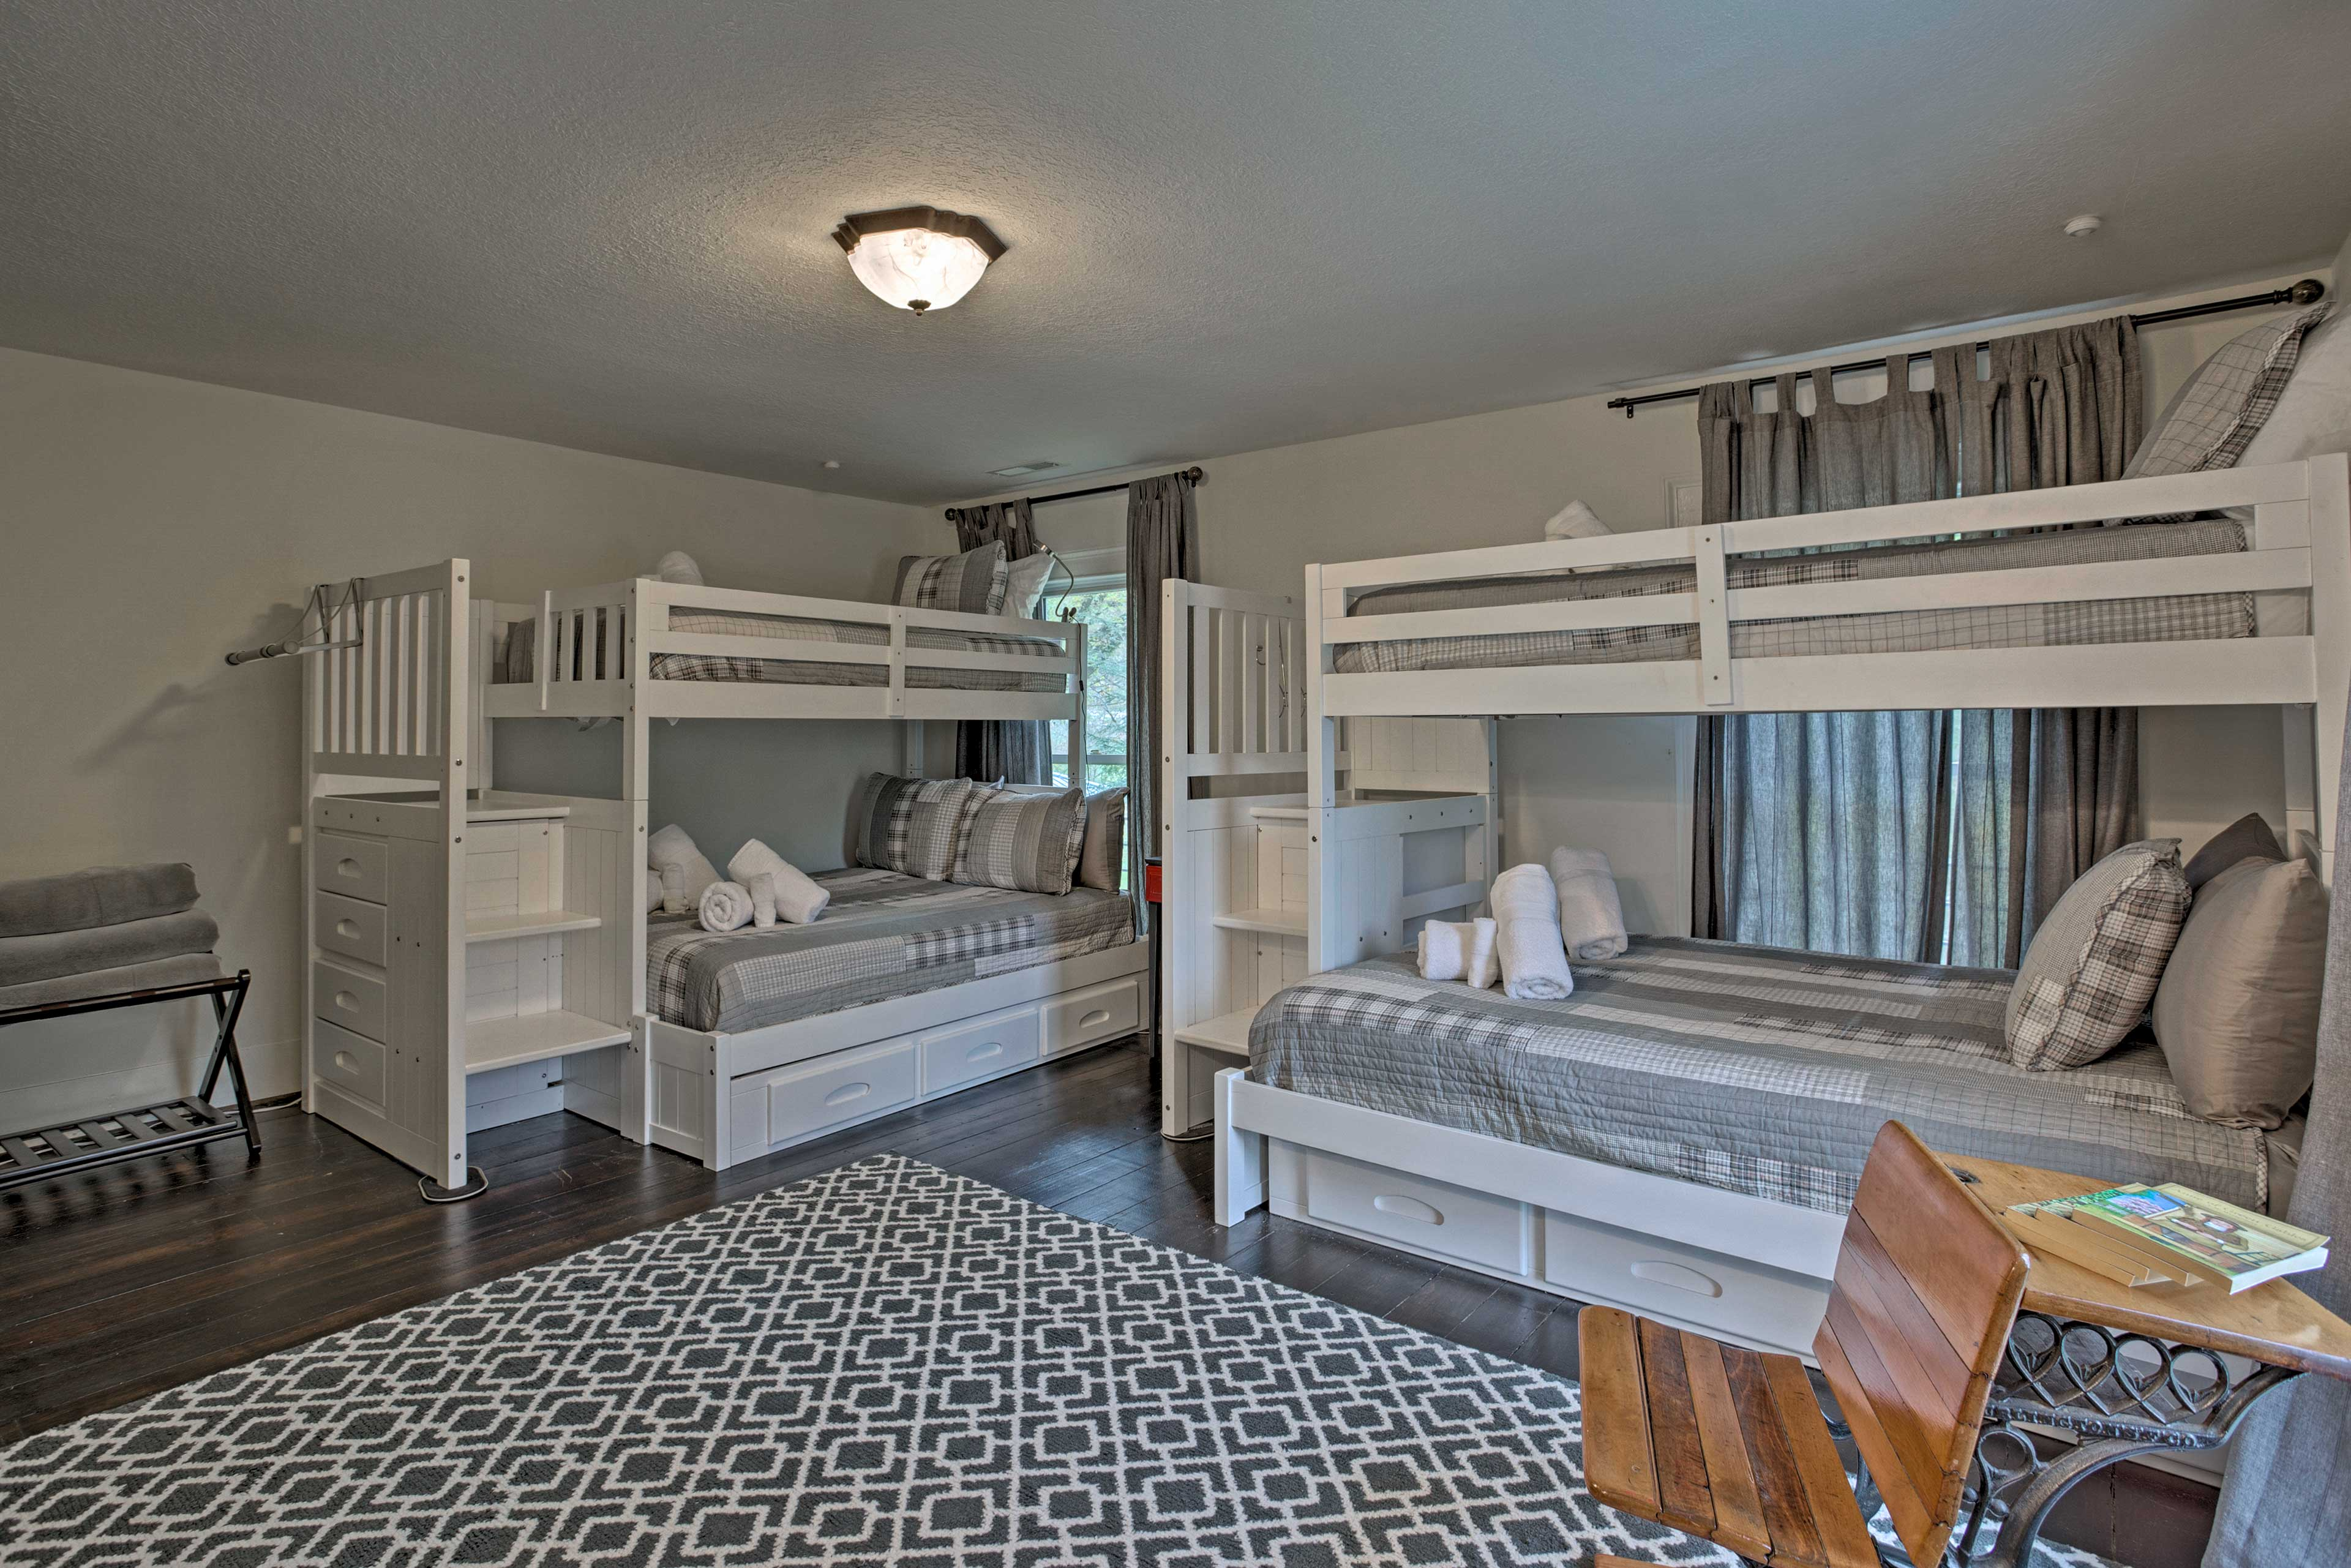 Siblings and friends will love sleeping in the bunk room!